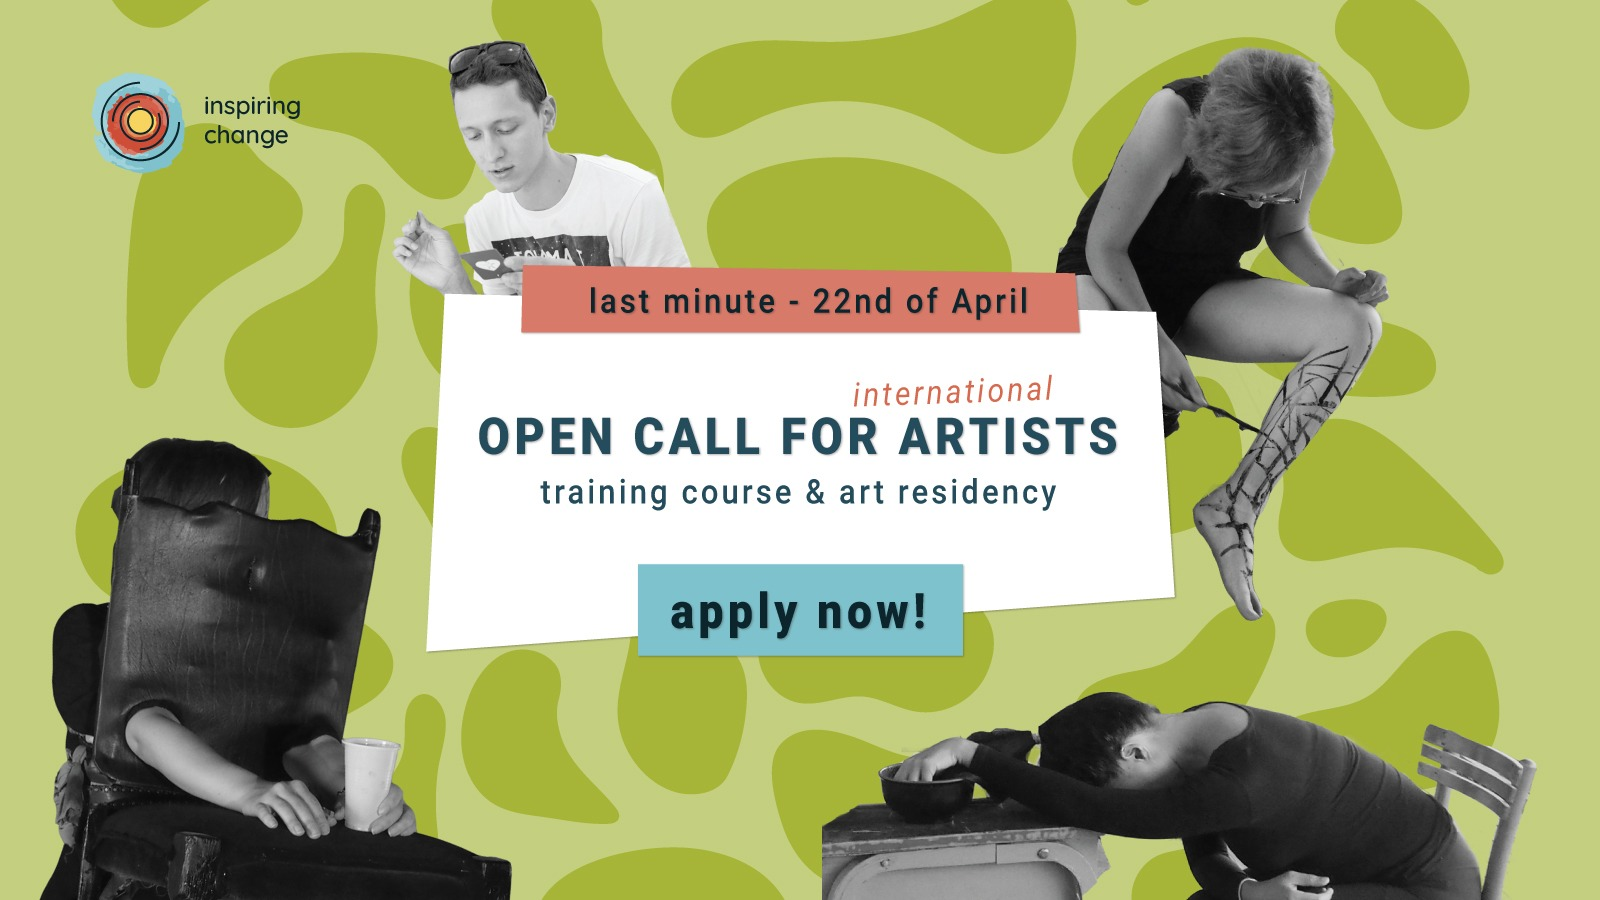 OPEN CALL FOR ARTISTS